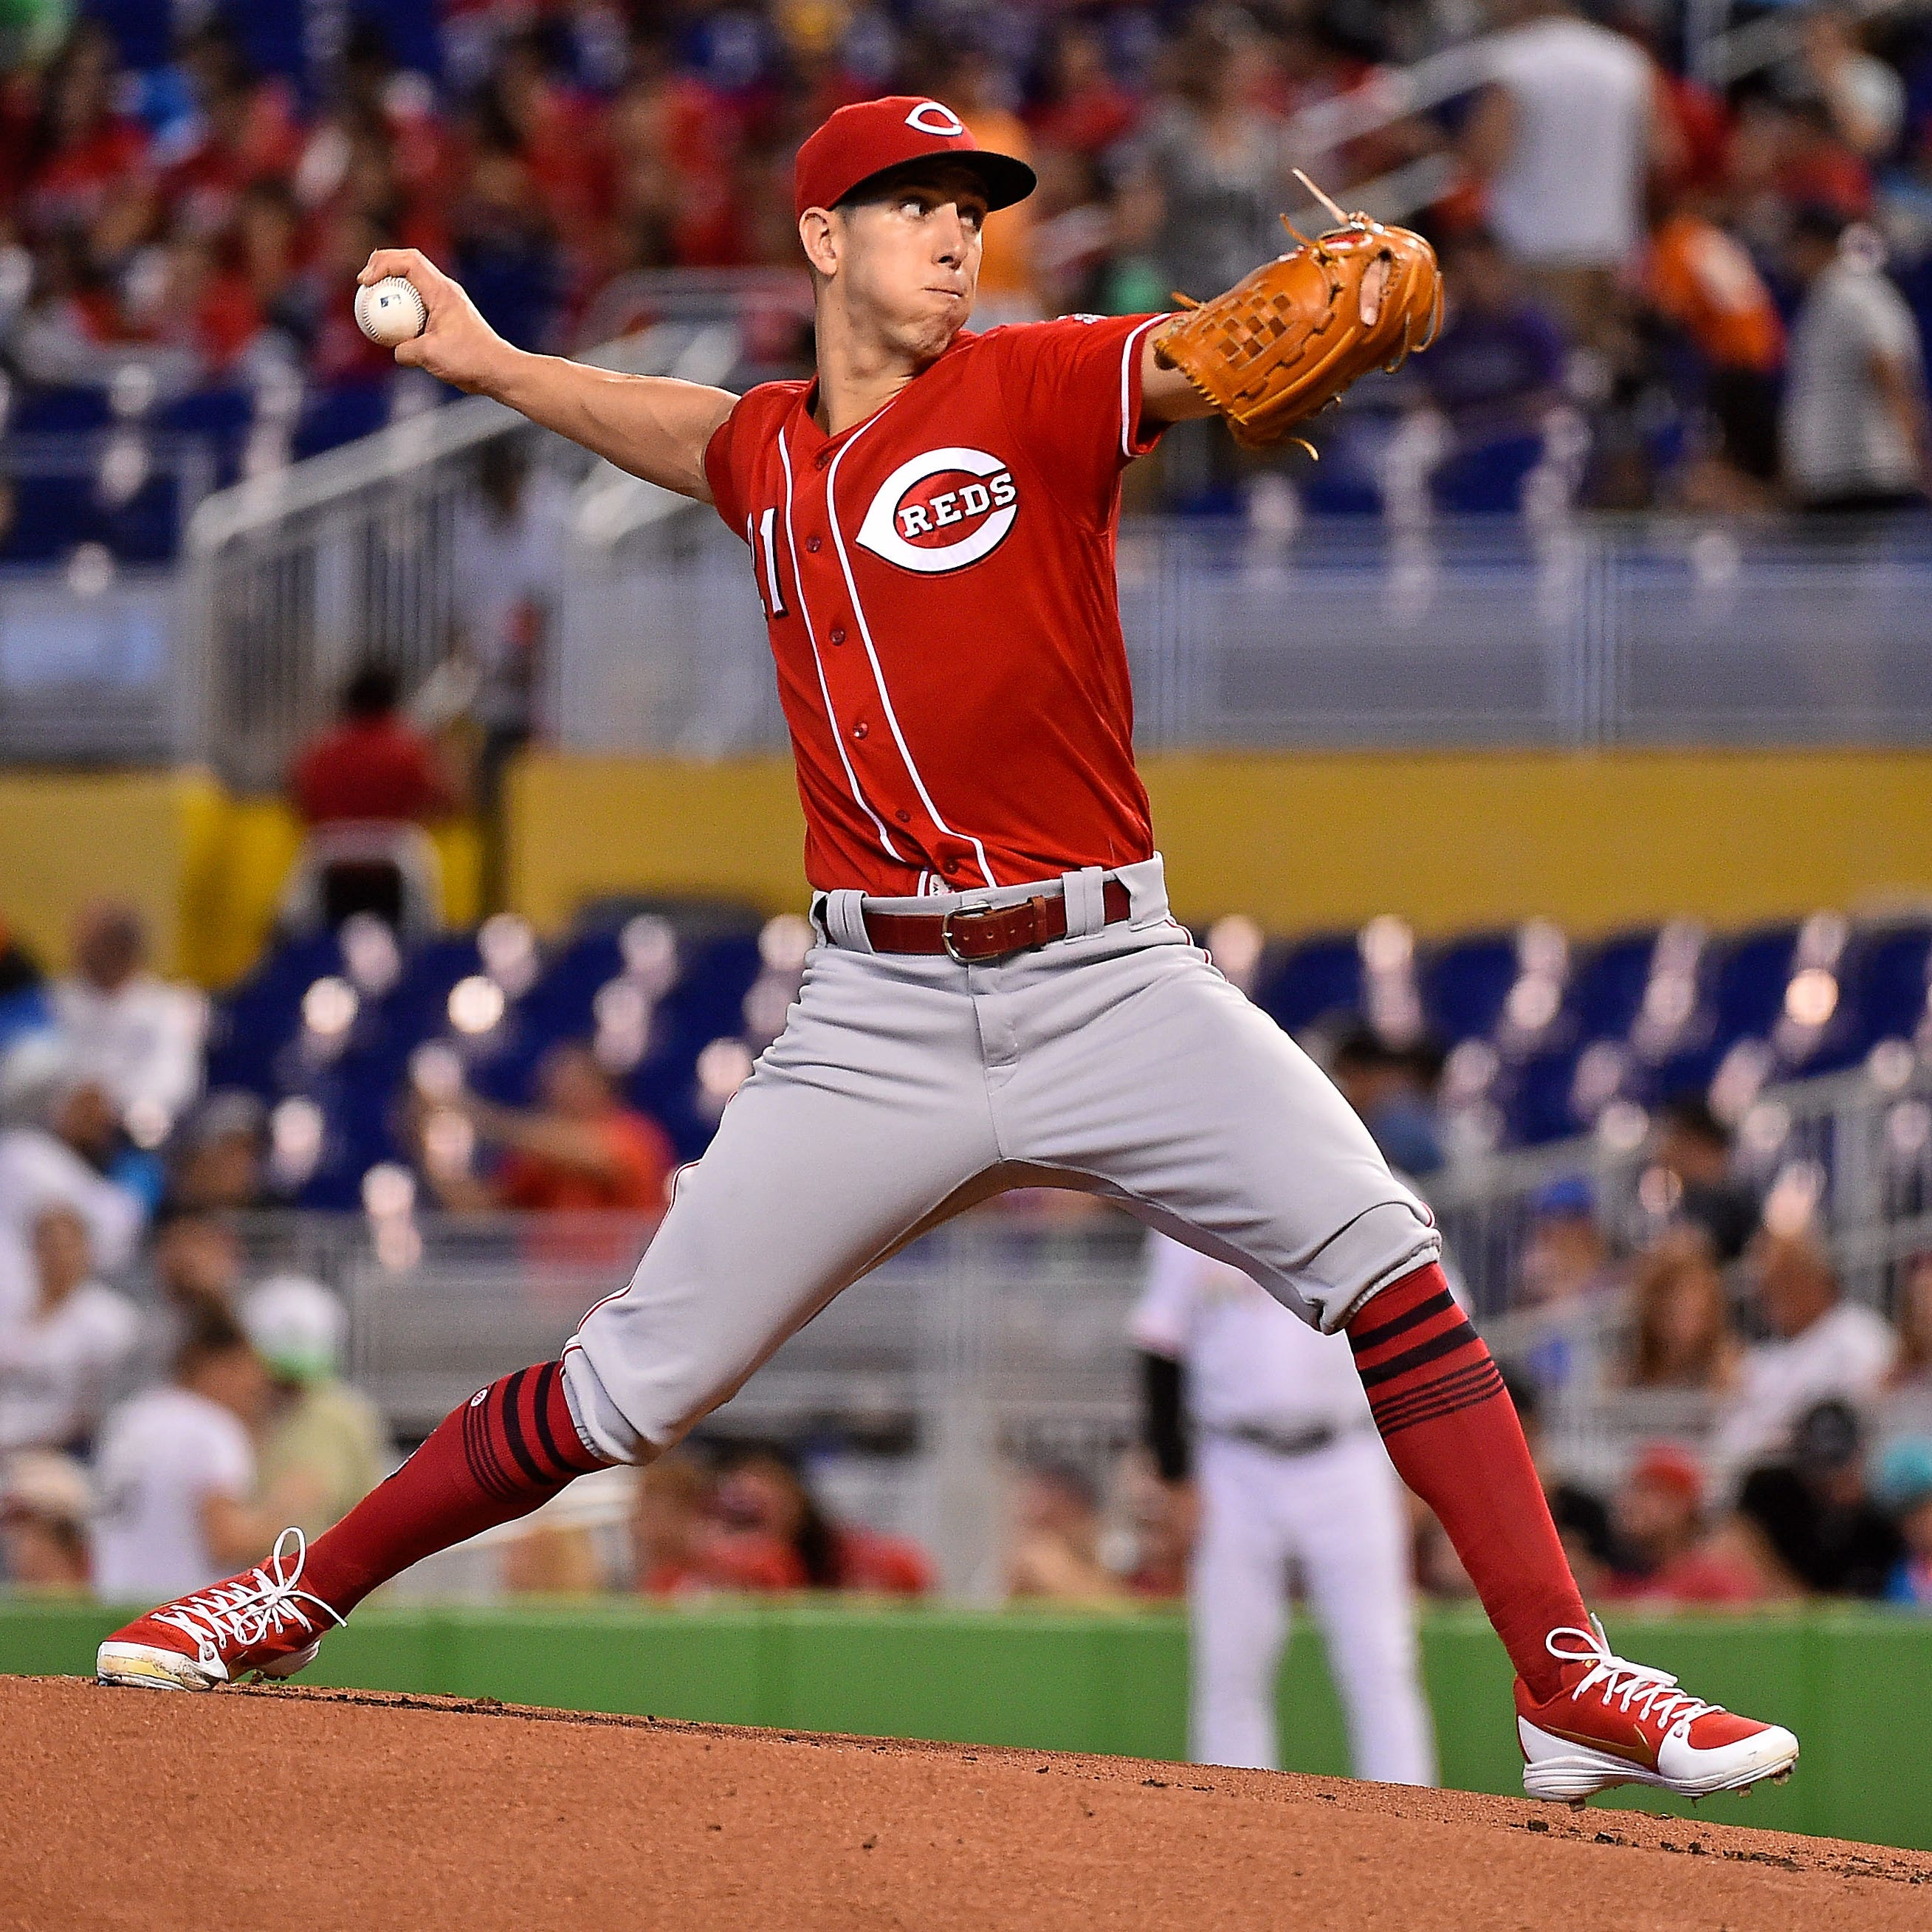 Cincinnati Reds interim manager Jim Riggleman: It's a new era for starting pitchers